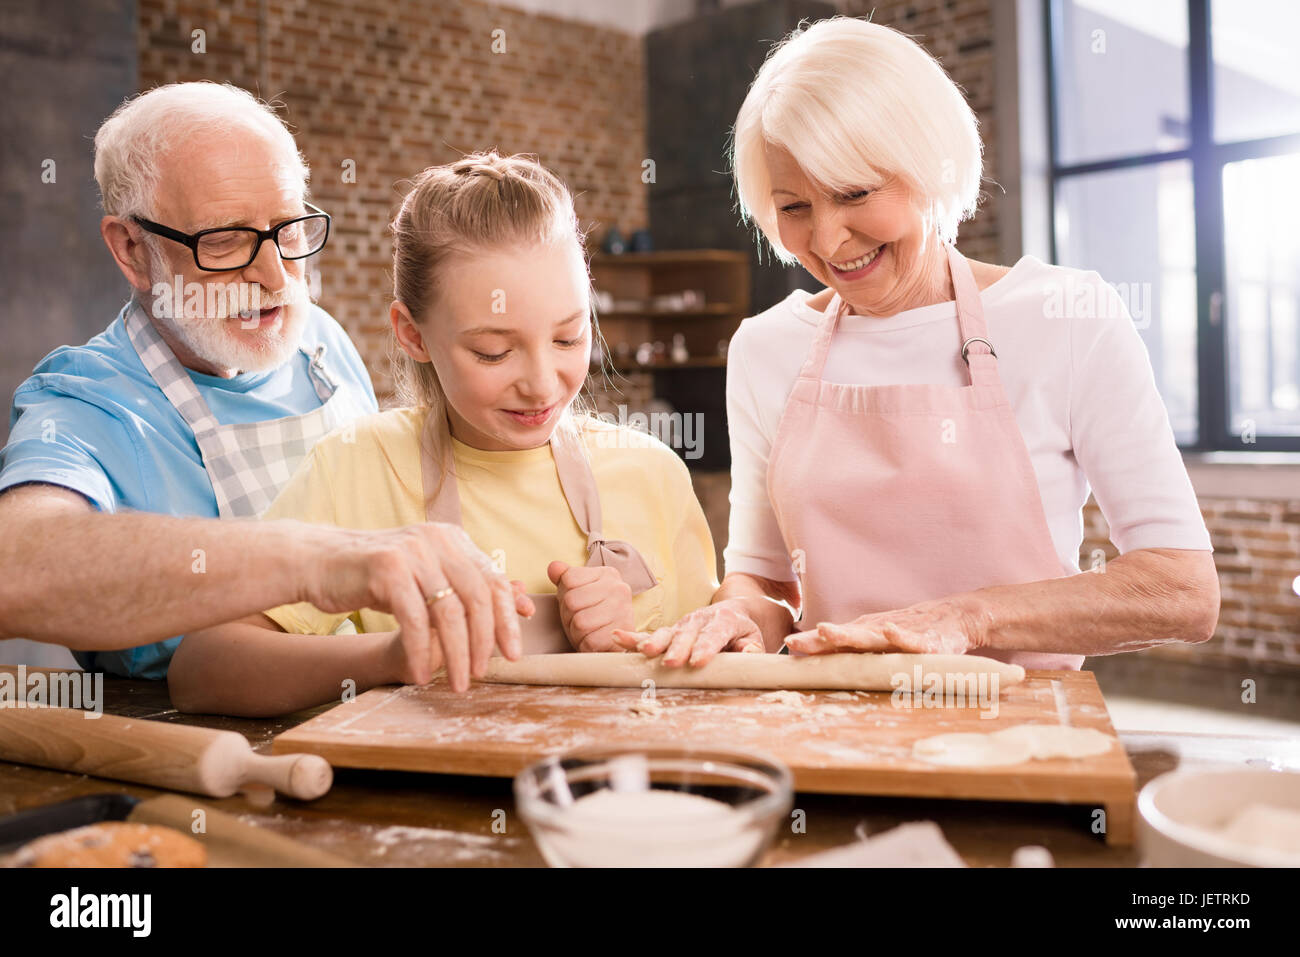 grandmother, grandfather and granddaughter cooking and kneading dough for cookies at kitchen table, cooking in kitchen - Stock Image